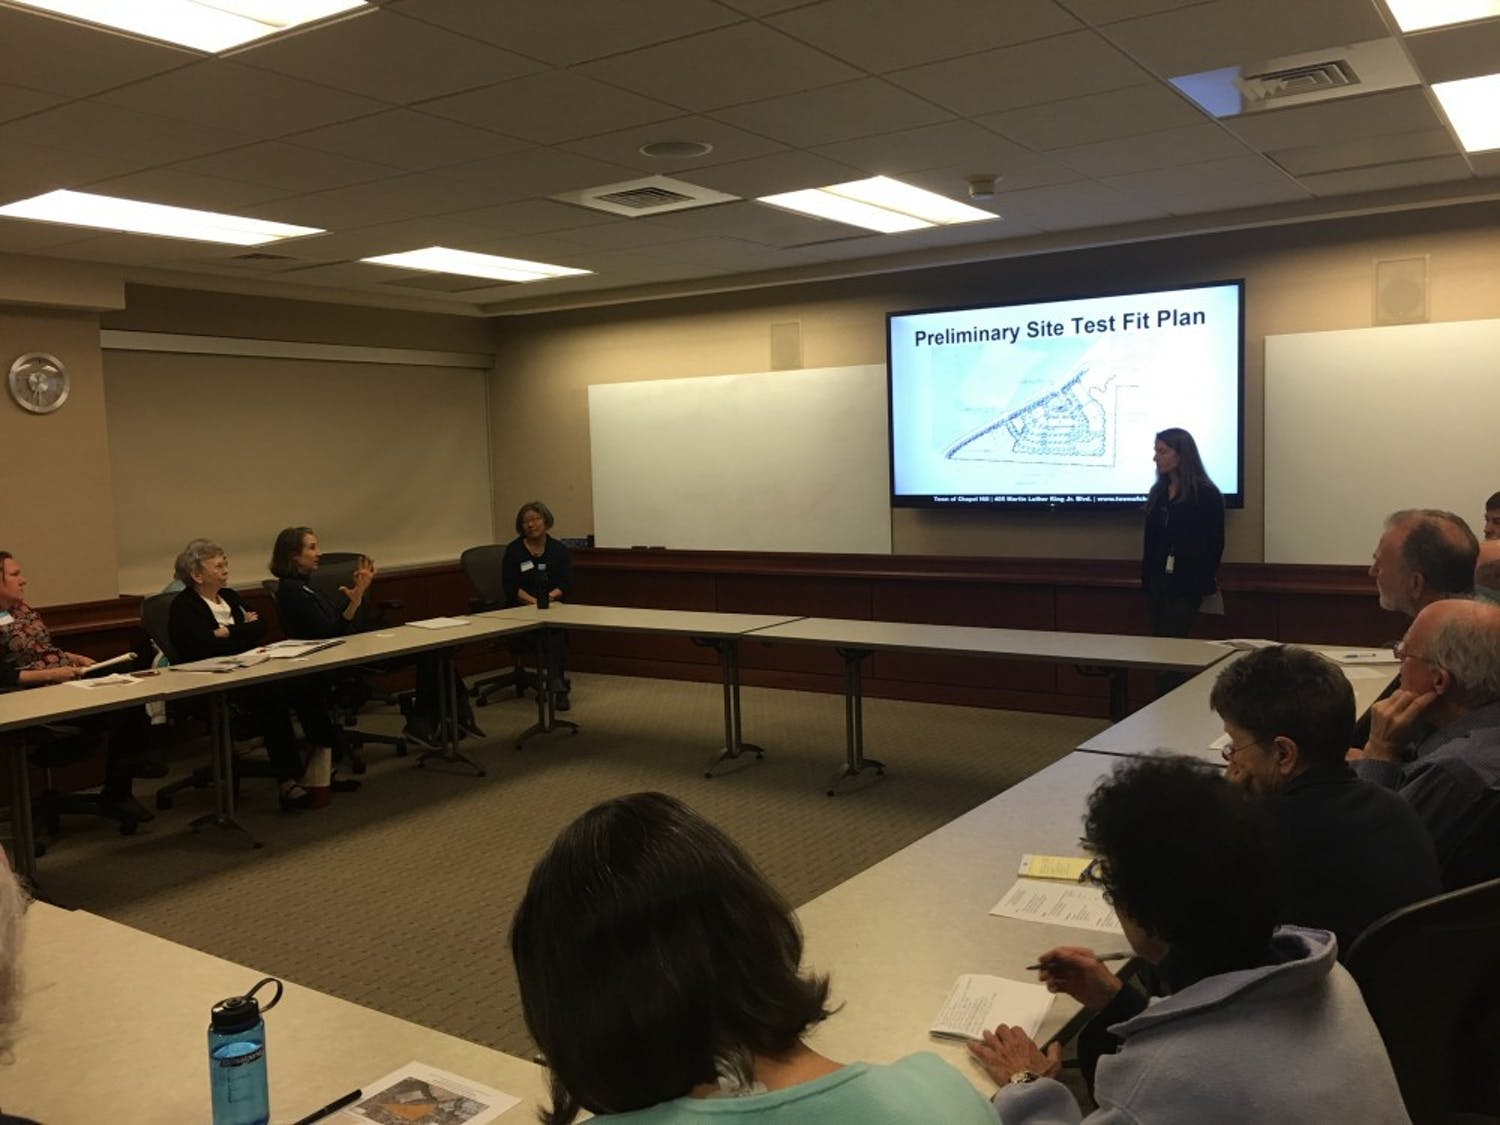 The town of Chapel Hill and the university held a joint meeting to discuss a possible new development.